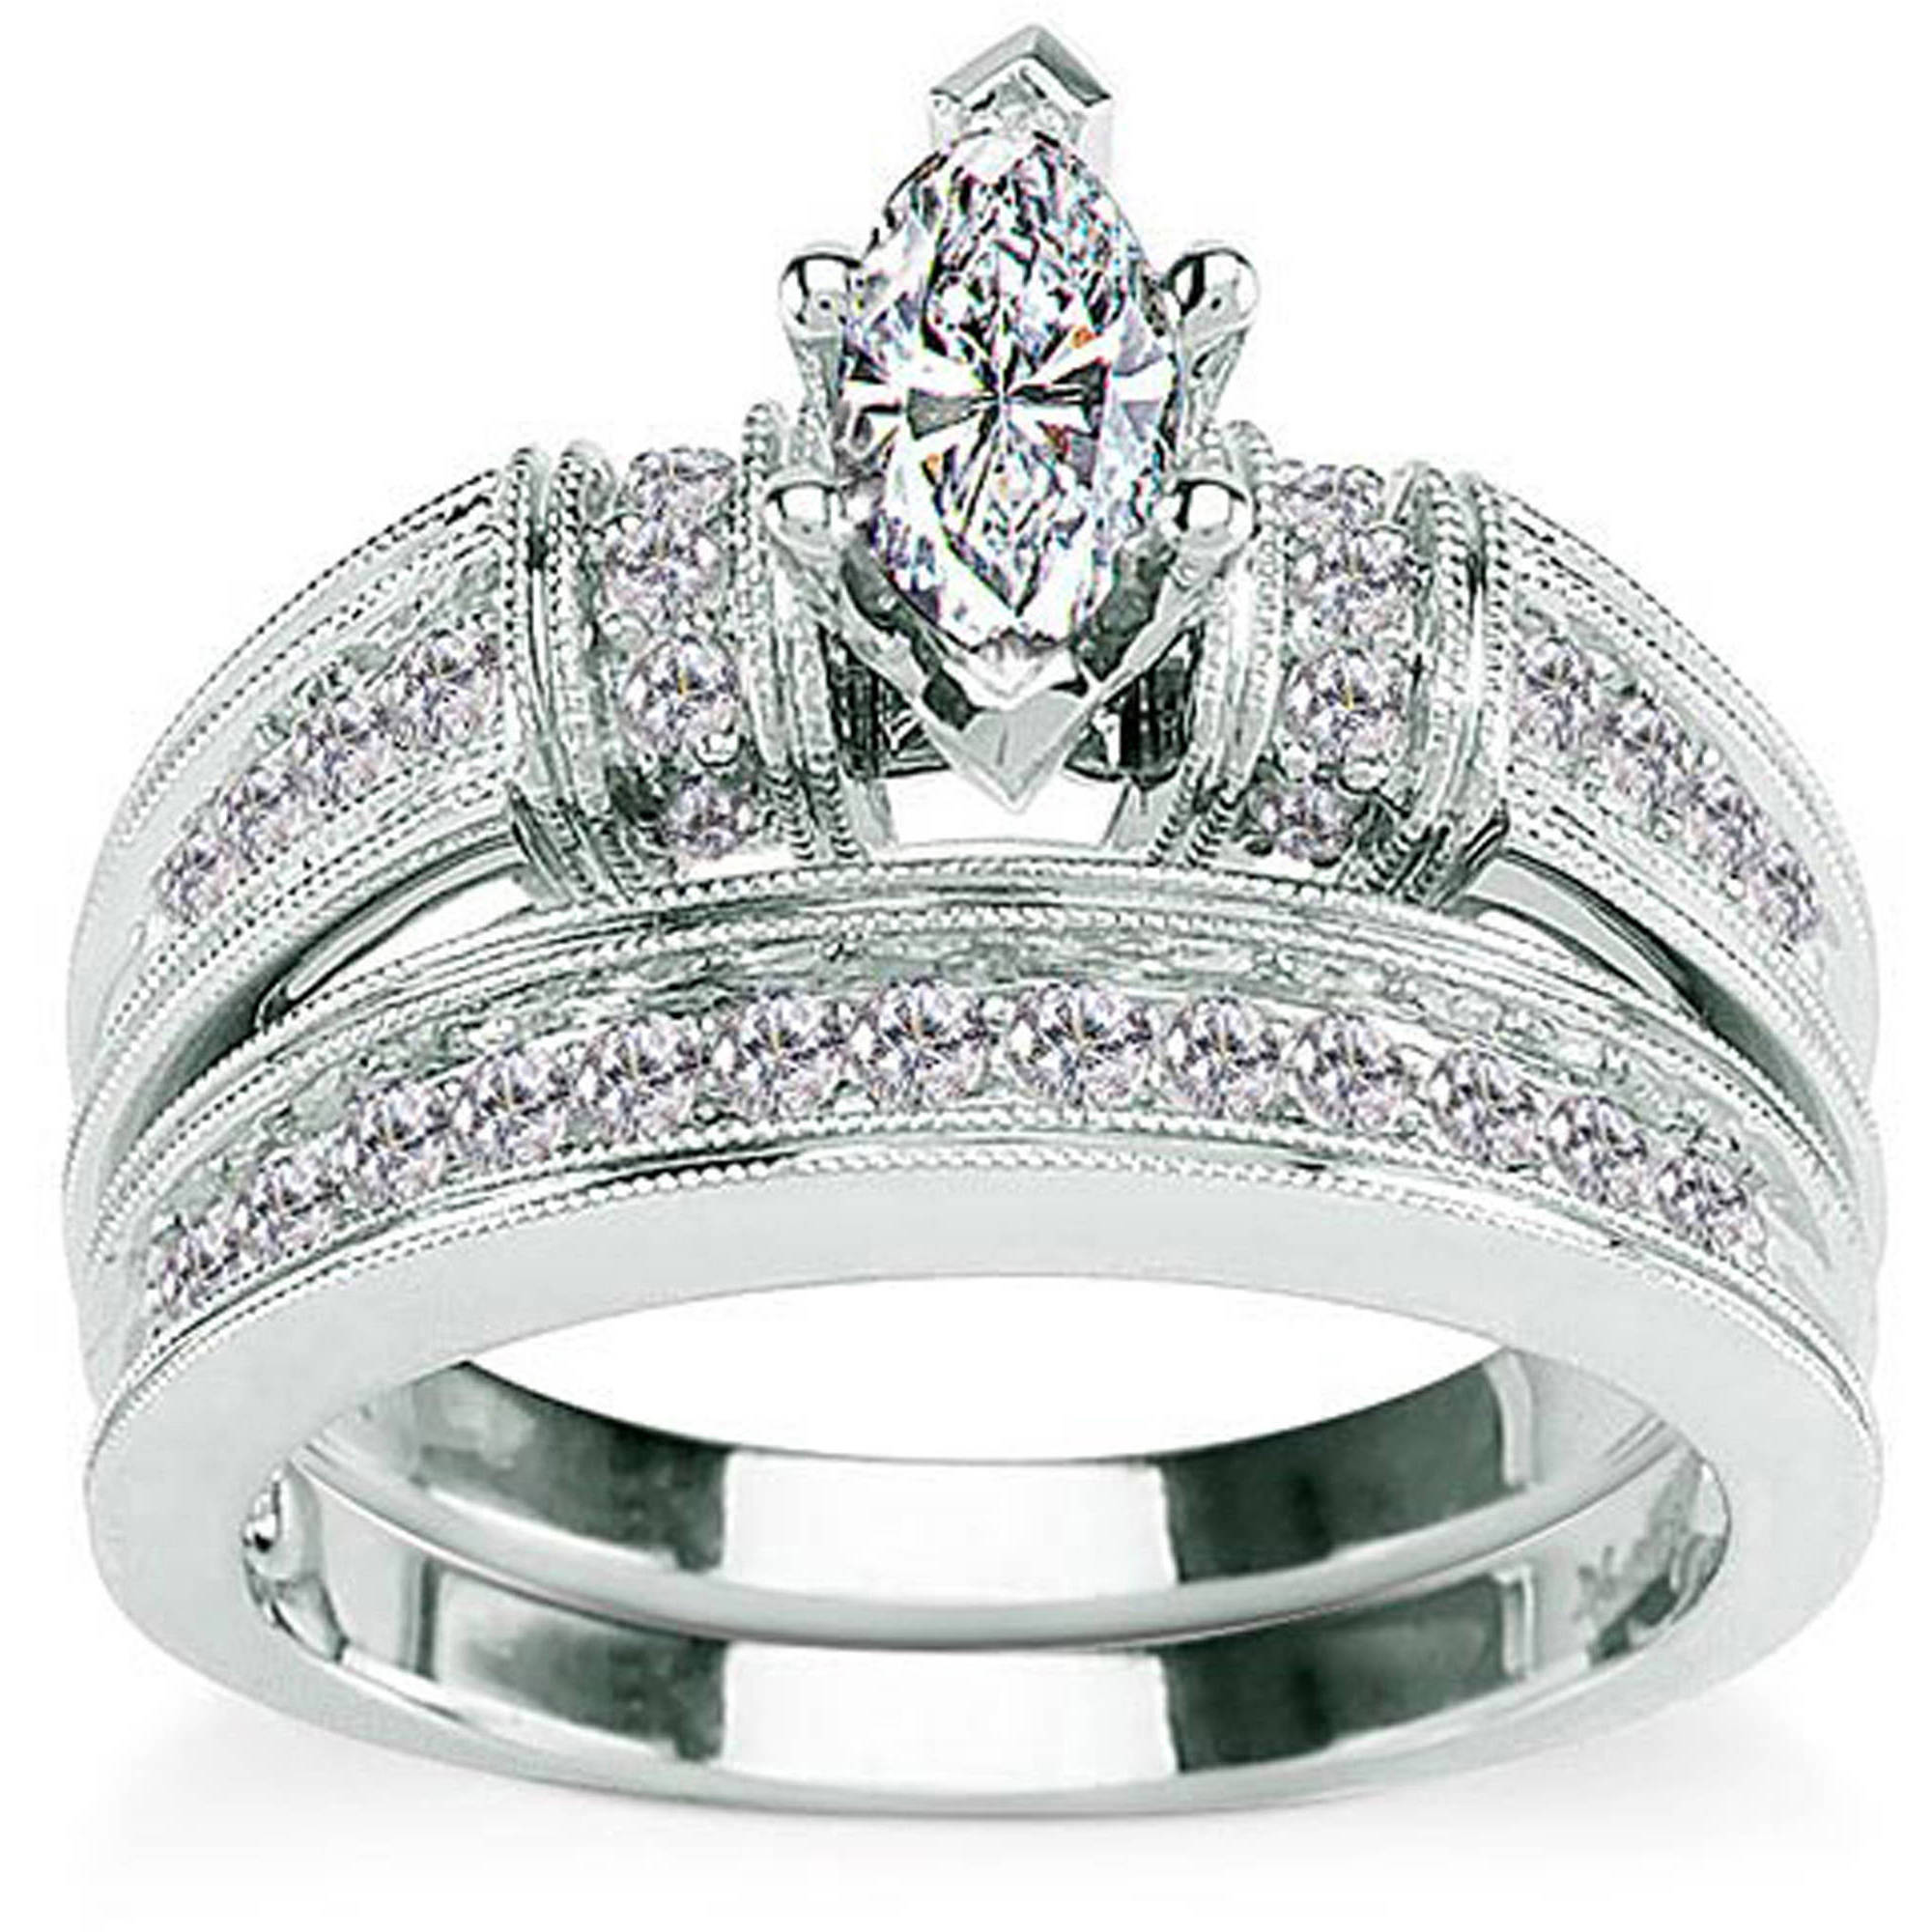 5 8 Carat Diamond Marquise Cut 14kt White Gold Bridal Set